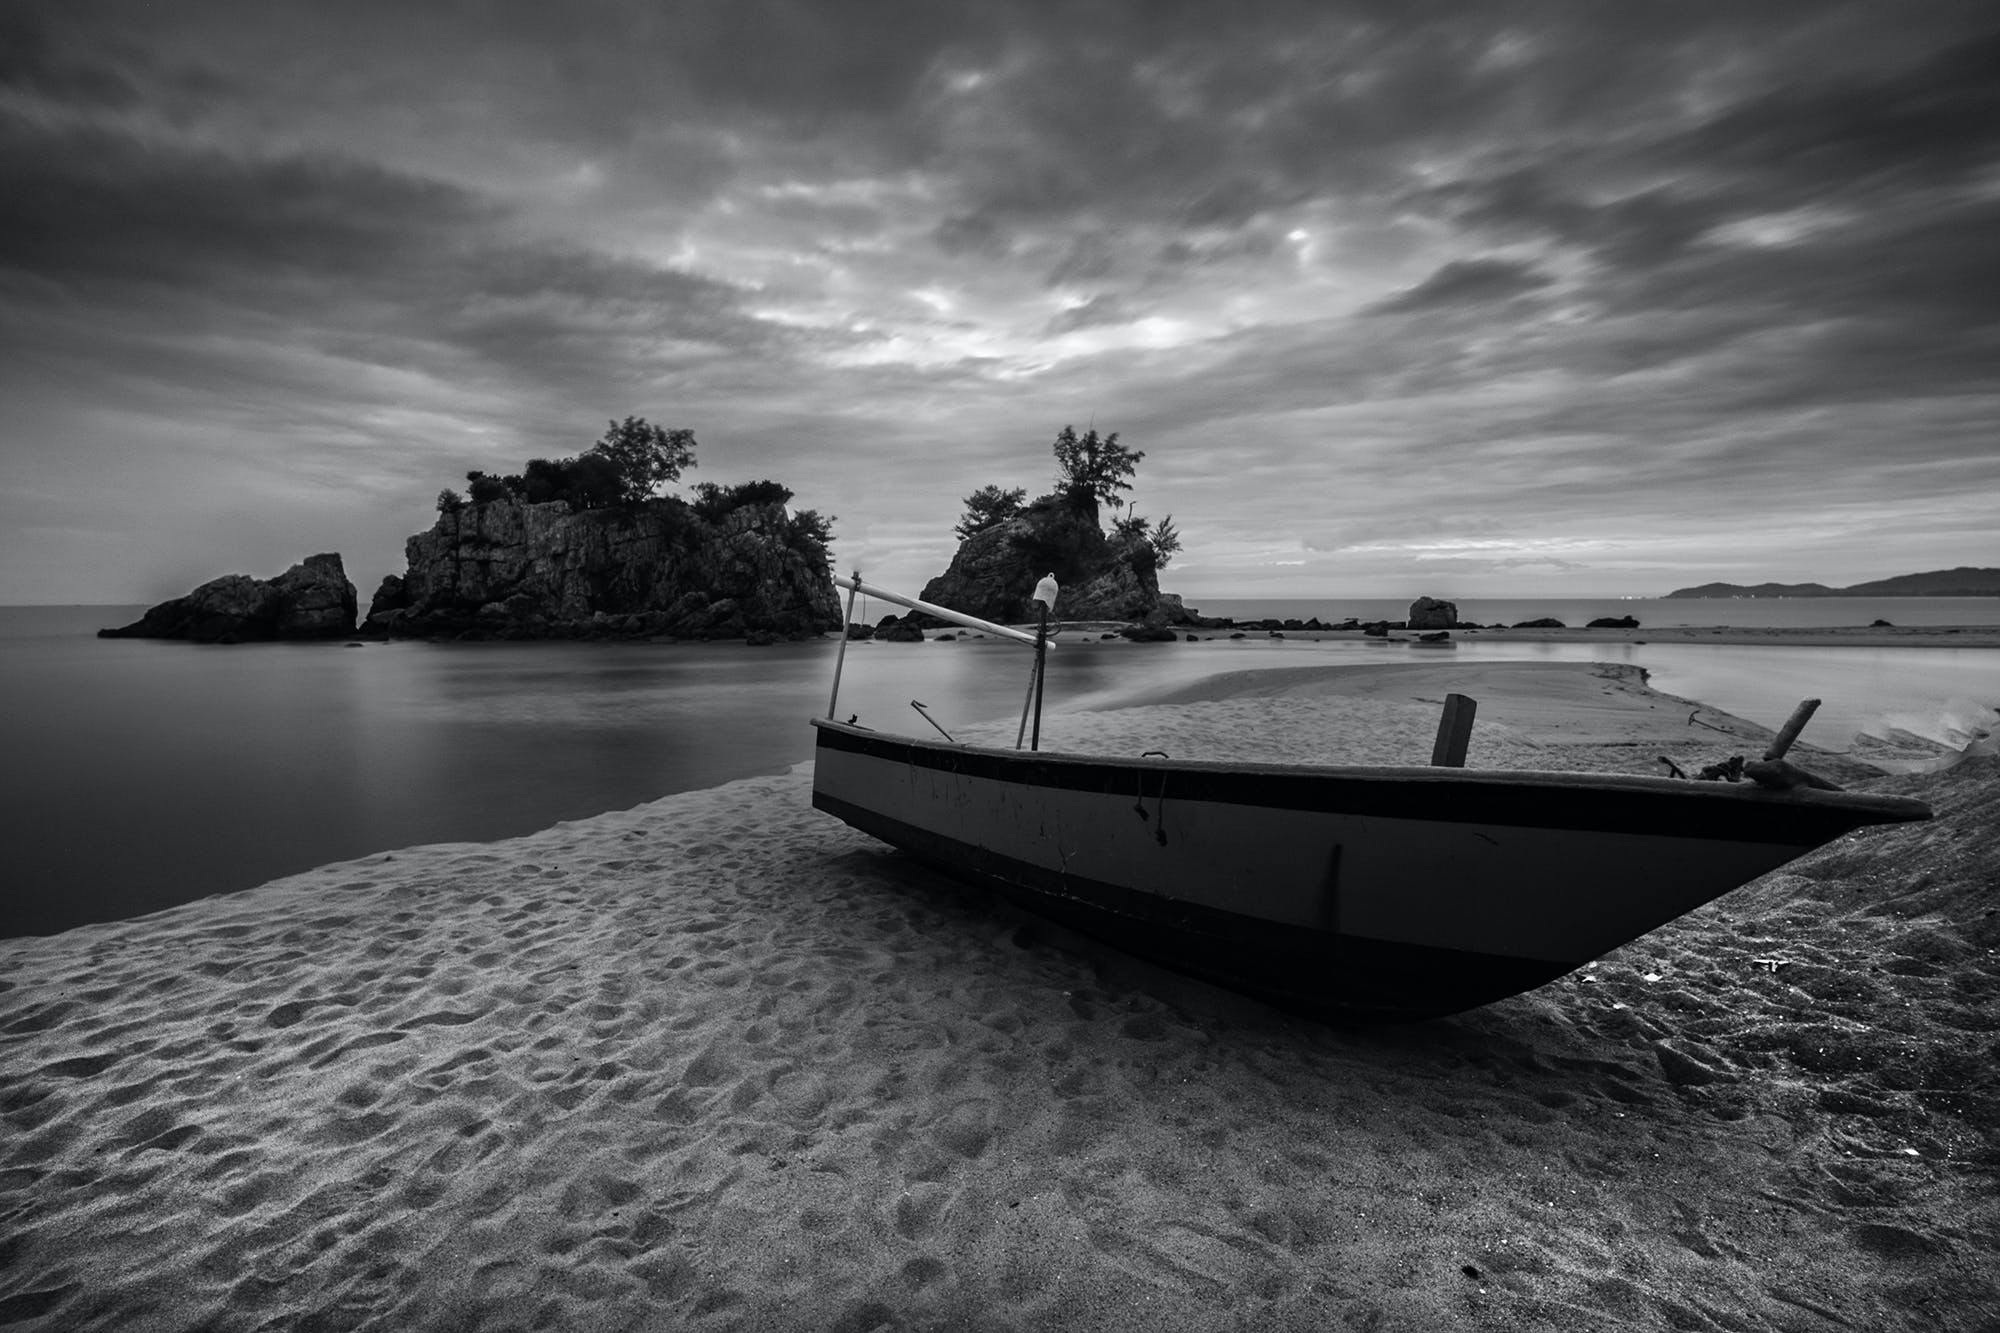 Gray Scale Photography of Brown Boat on Seashore